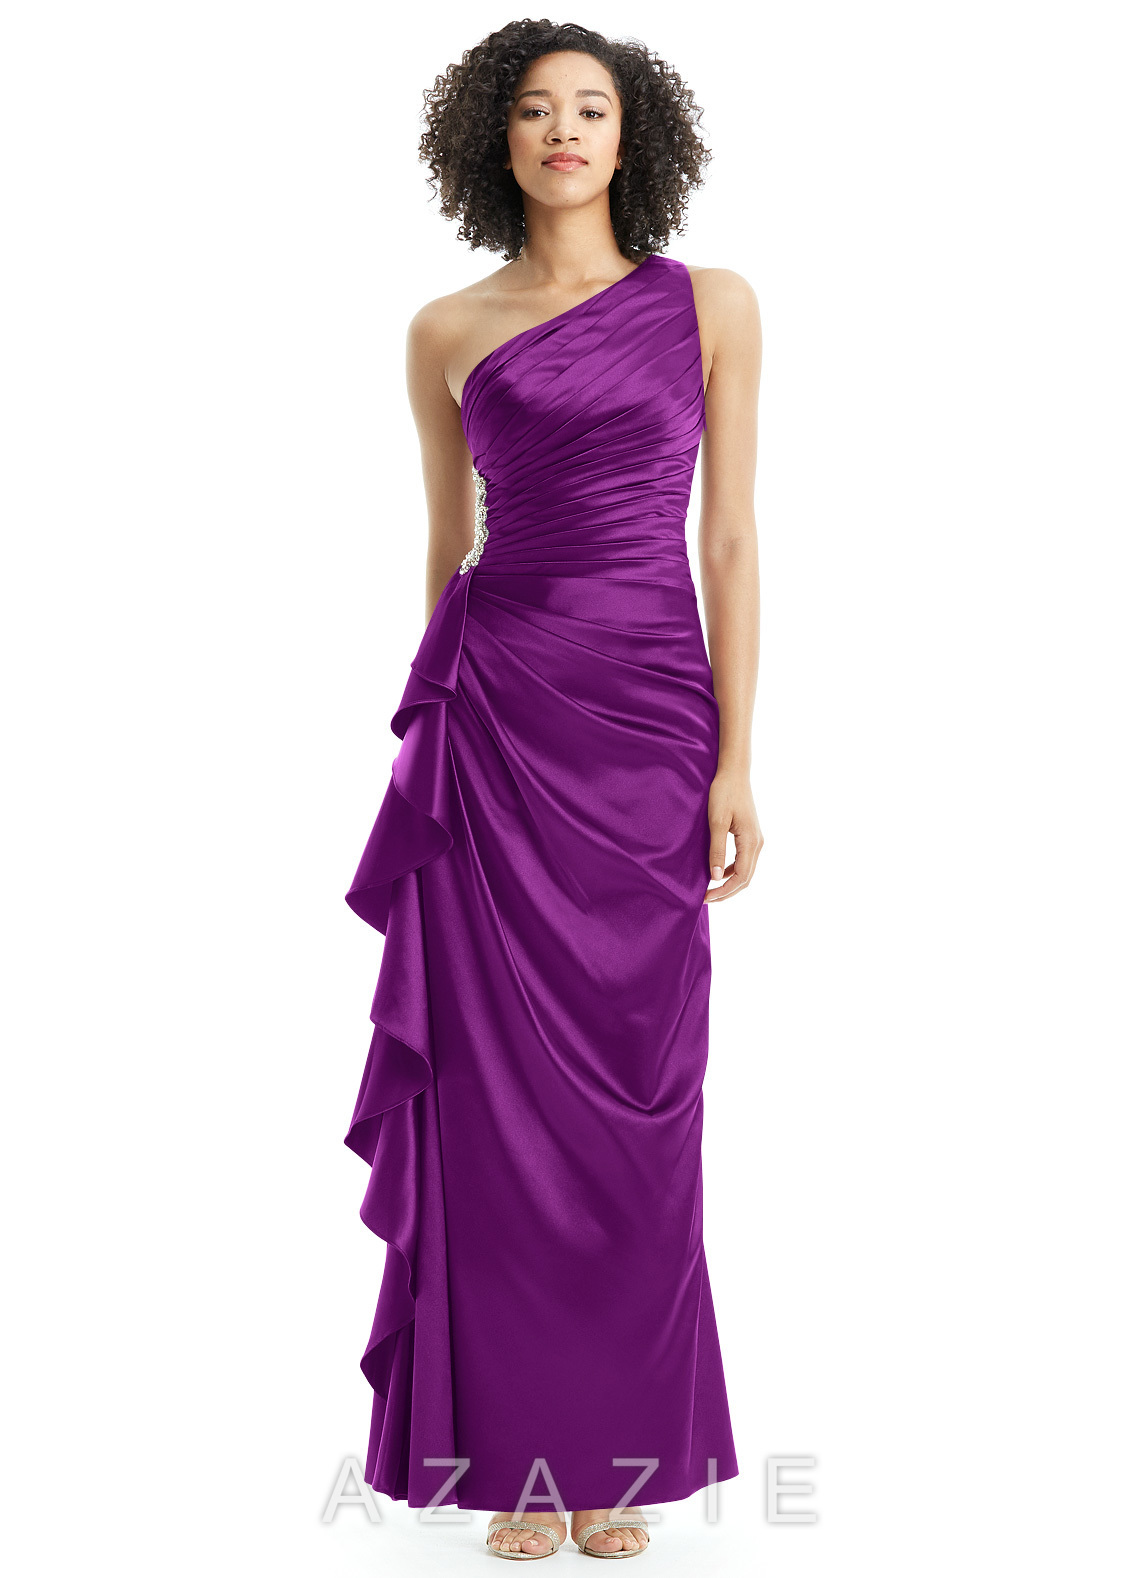 Azazie Kamila Bridesmaid Dress | Azazie